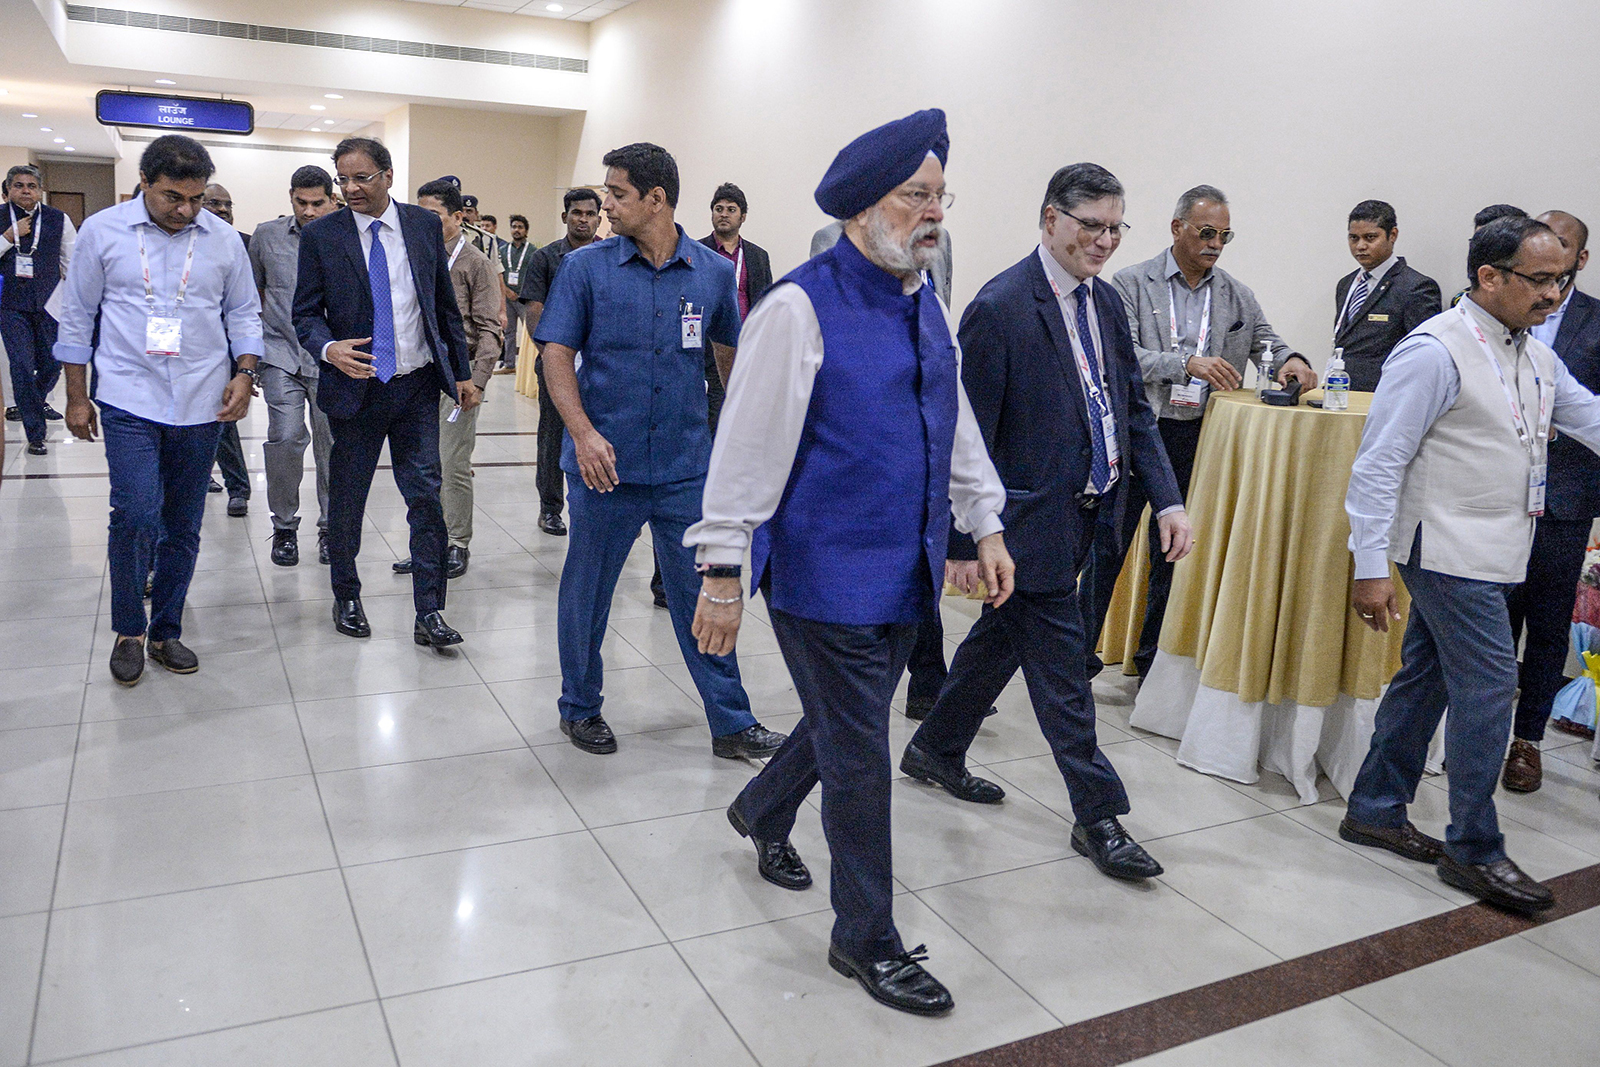 Indian Minister of Civil Aviation Hardeep Singh Puri, center, arrives to attend a ministerial plenary at the Wings India 2020 international exhibition at Begumpet Airport in Hyderabad, on March 14.